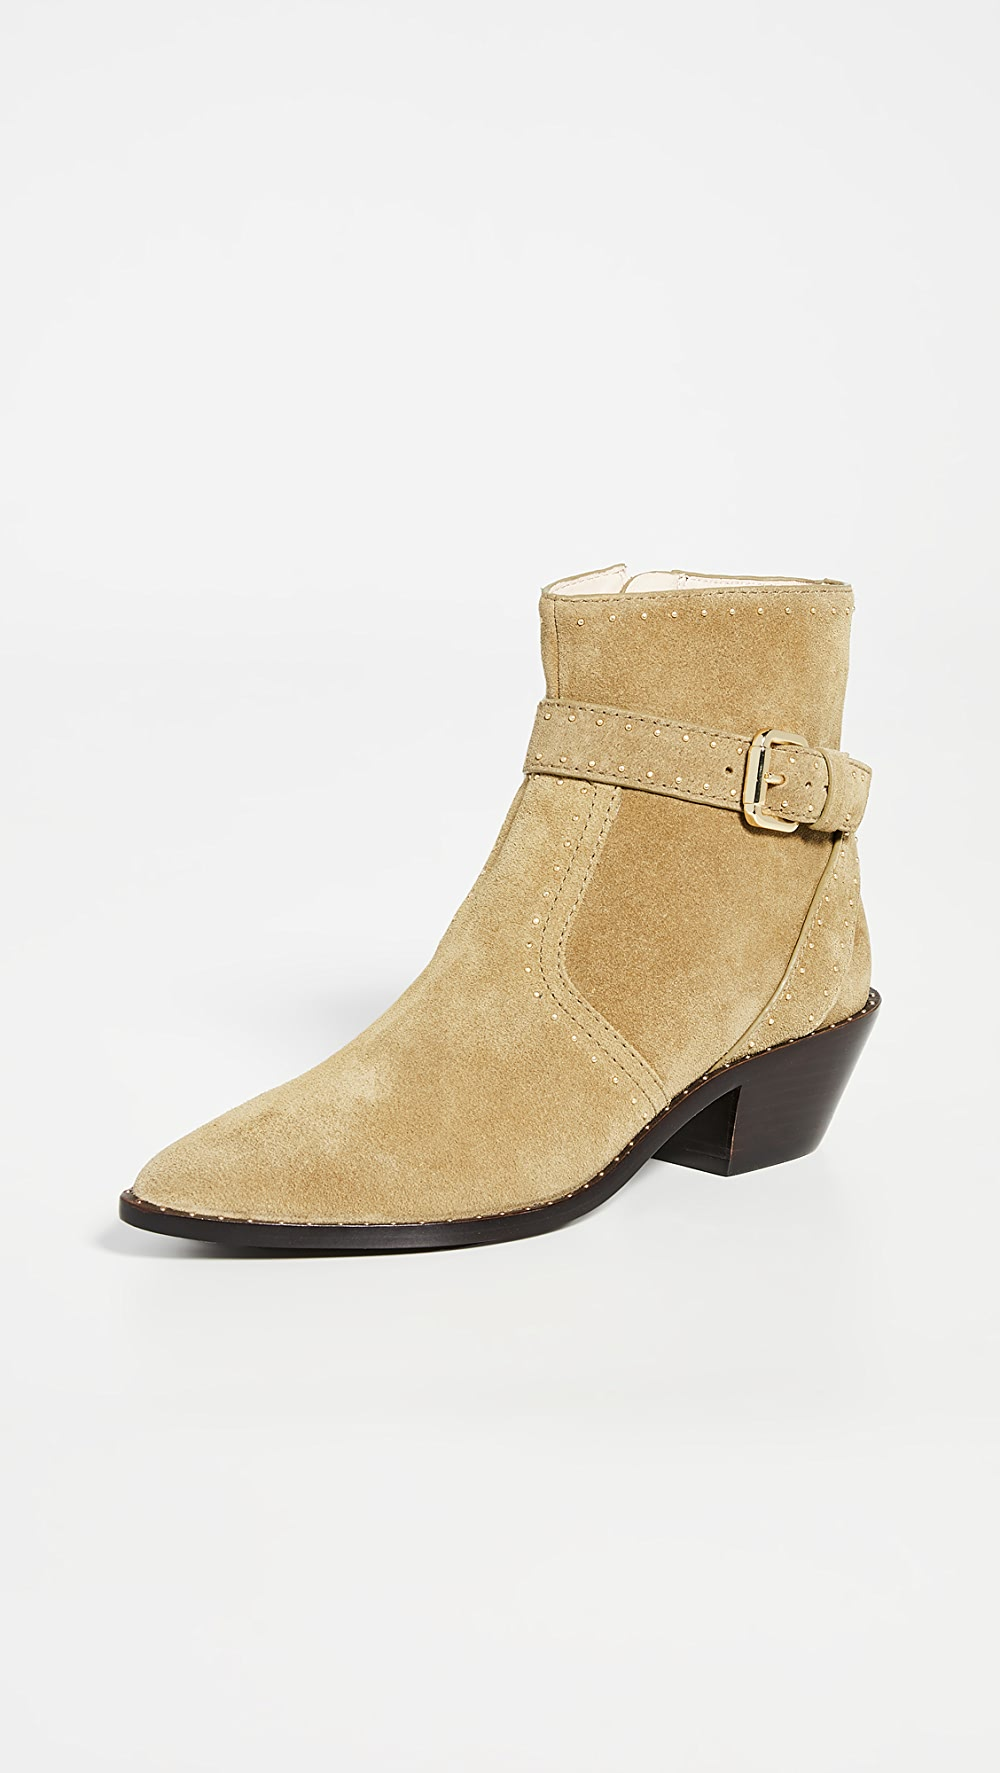 2019 Latest Design Loeffler Randall - Joni Western Booties To Ensure A Like-New Appearance Indefinably